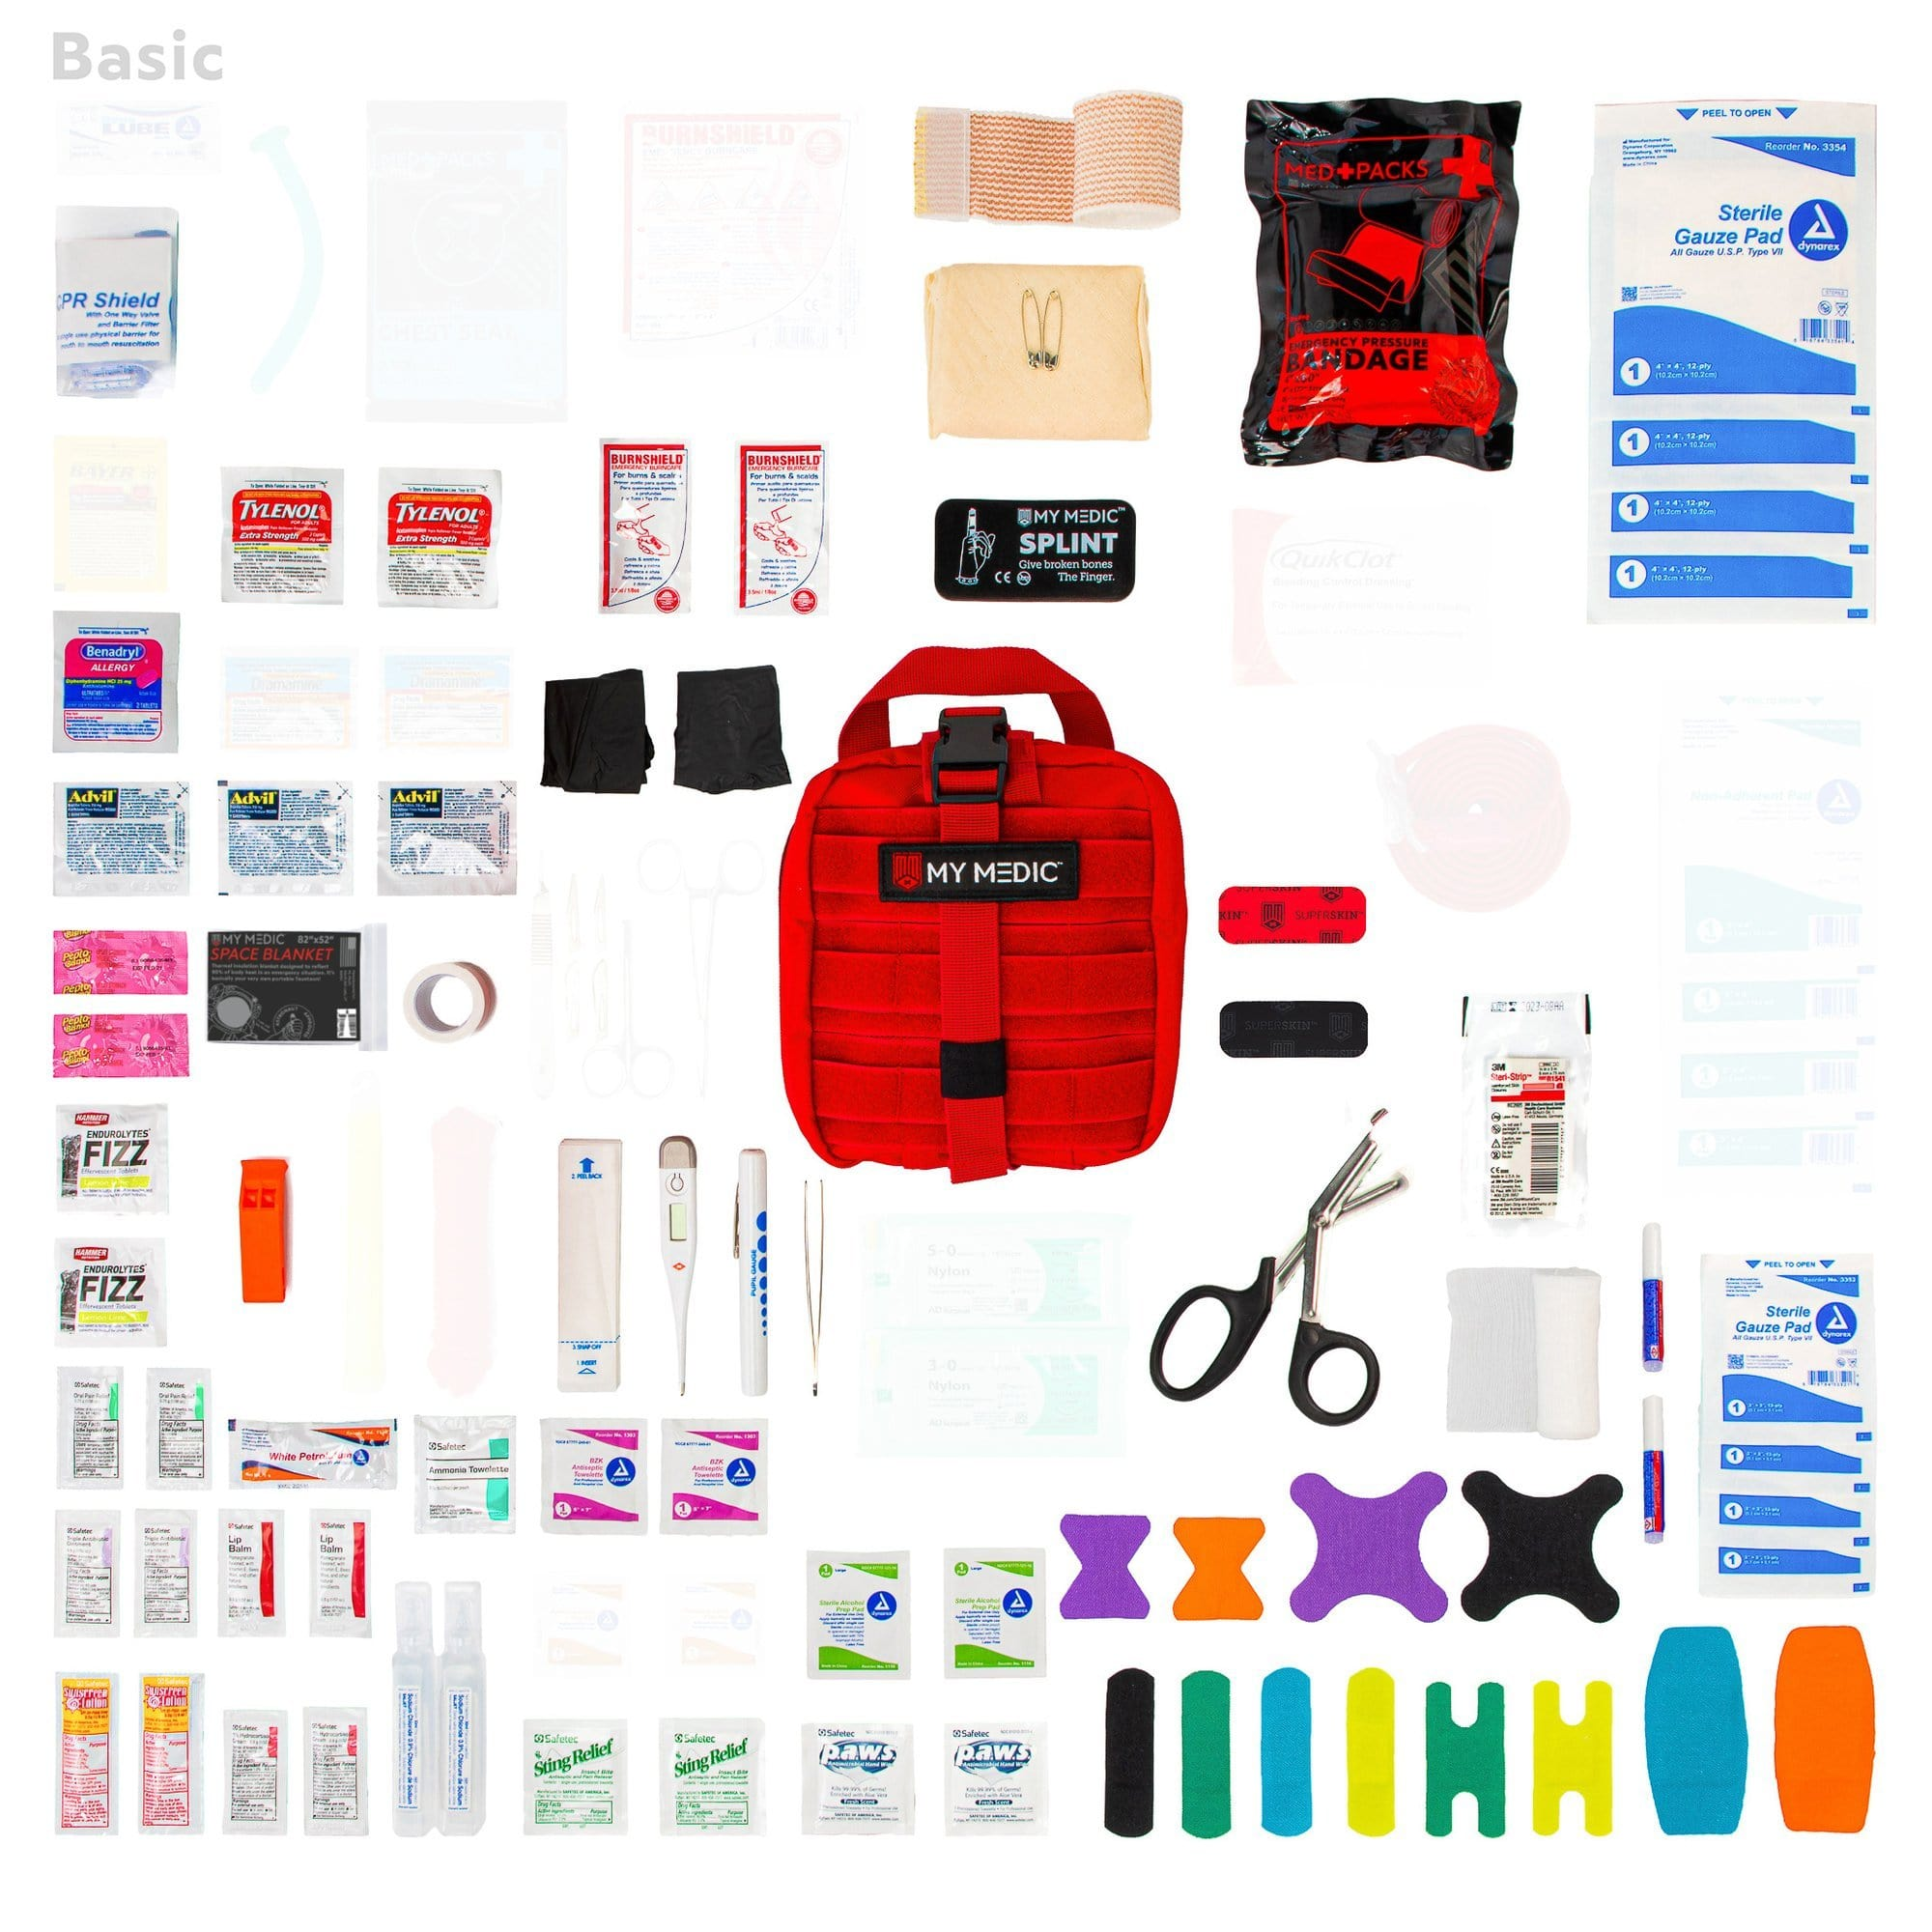 Contents of the MyFAK: Basic Individual First Aid Kit [IFAK] by MyMedic